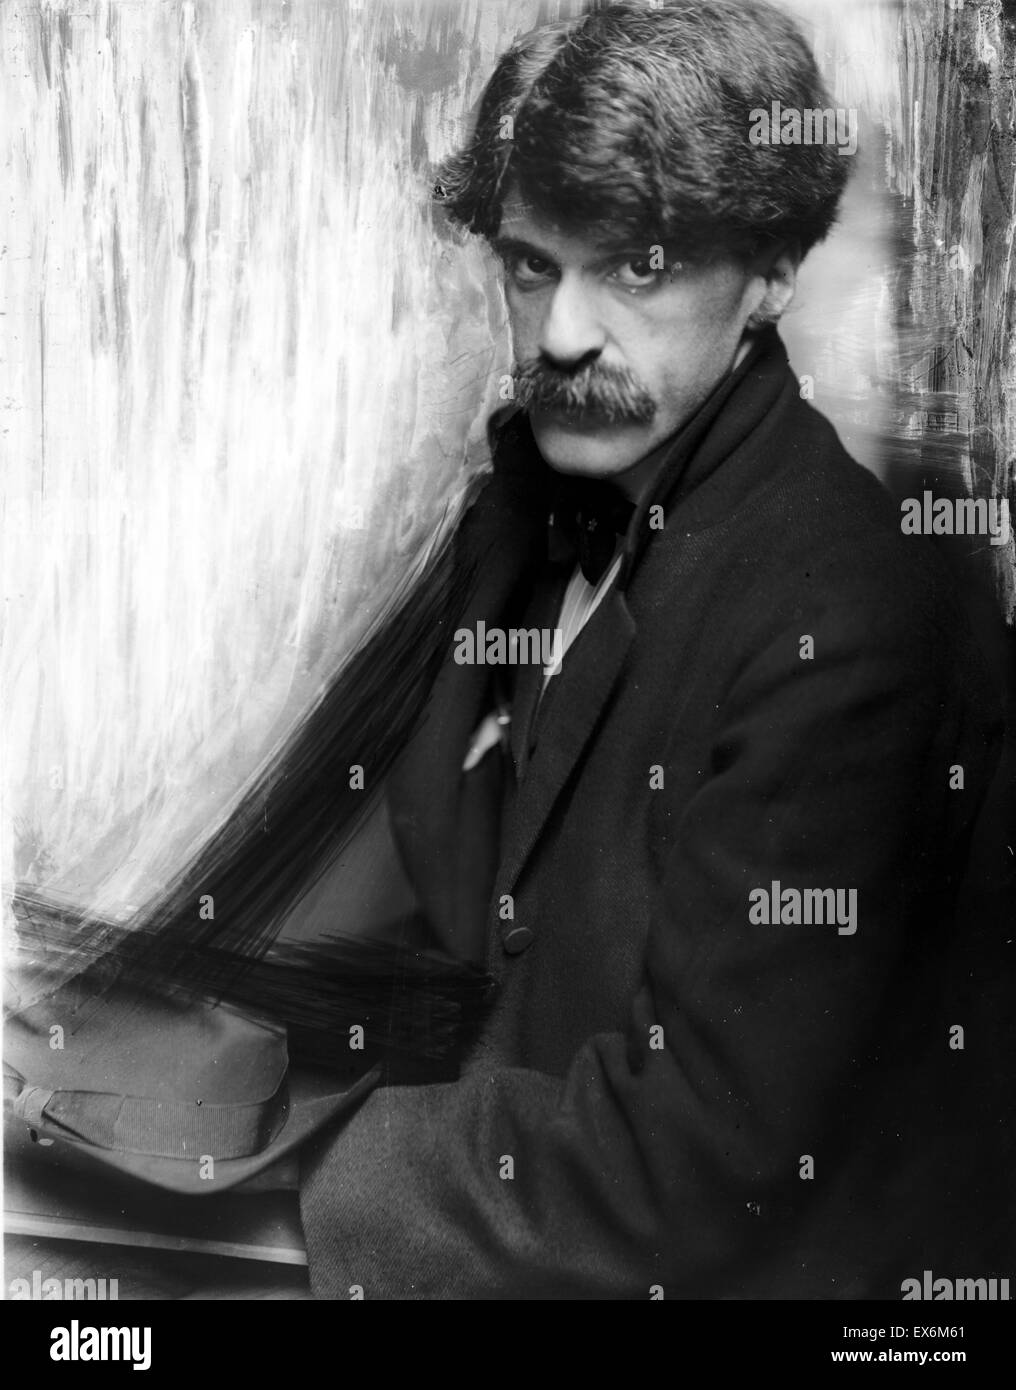 8474d5b2e0f2 Photograph of Alfred Stieglitz. Photographed by Gertrude Käsebier  (1852-1934). Dated 1902